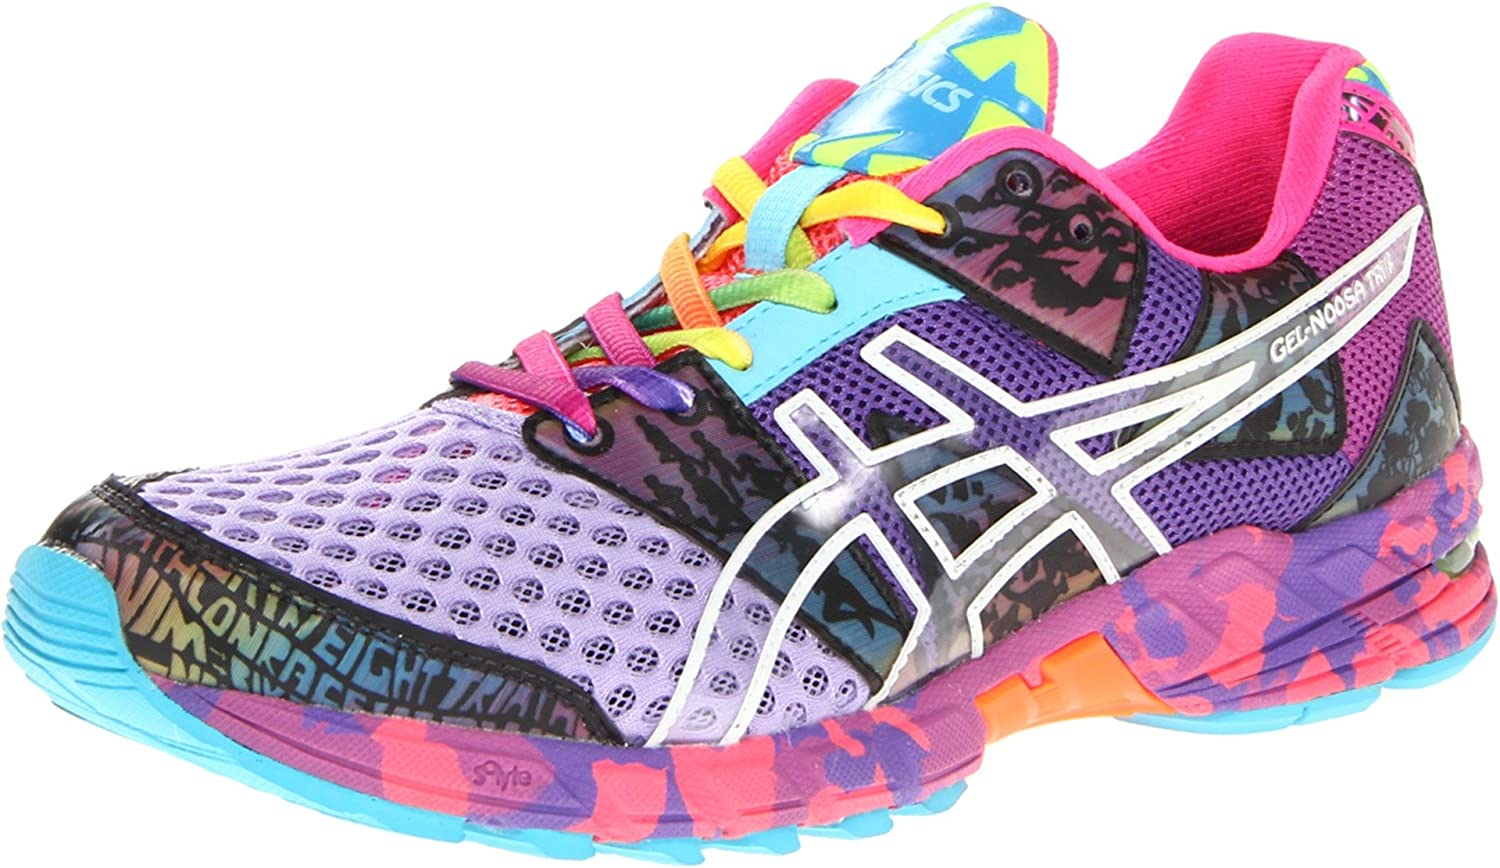 Asics Gel-Noosa Tri 8 Womens Running Sneakers (T356N-2536)  Amazon.co.uk   Shoes   Bags b81ab1b038ea